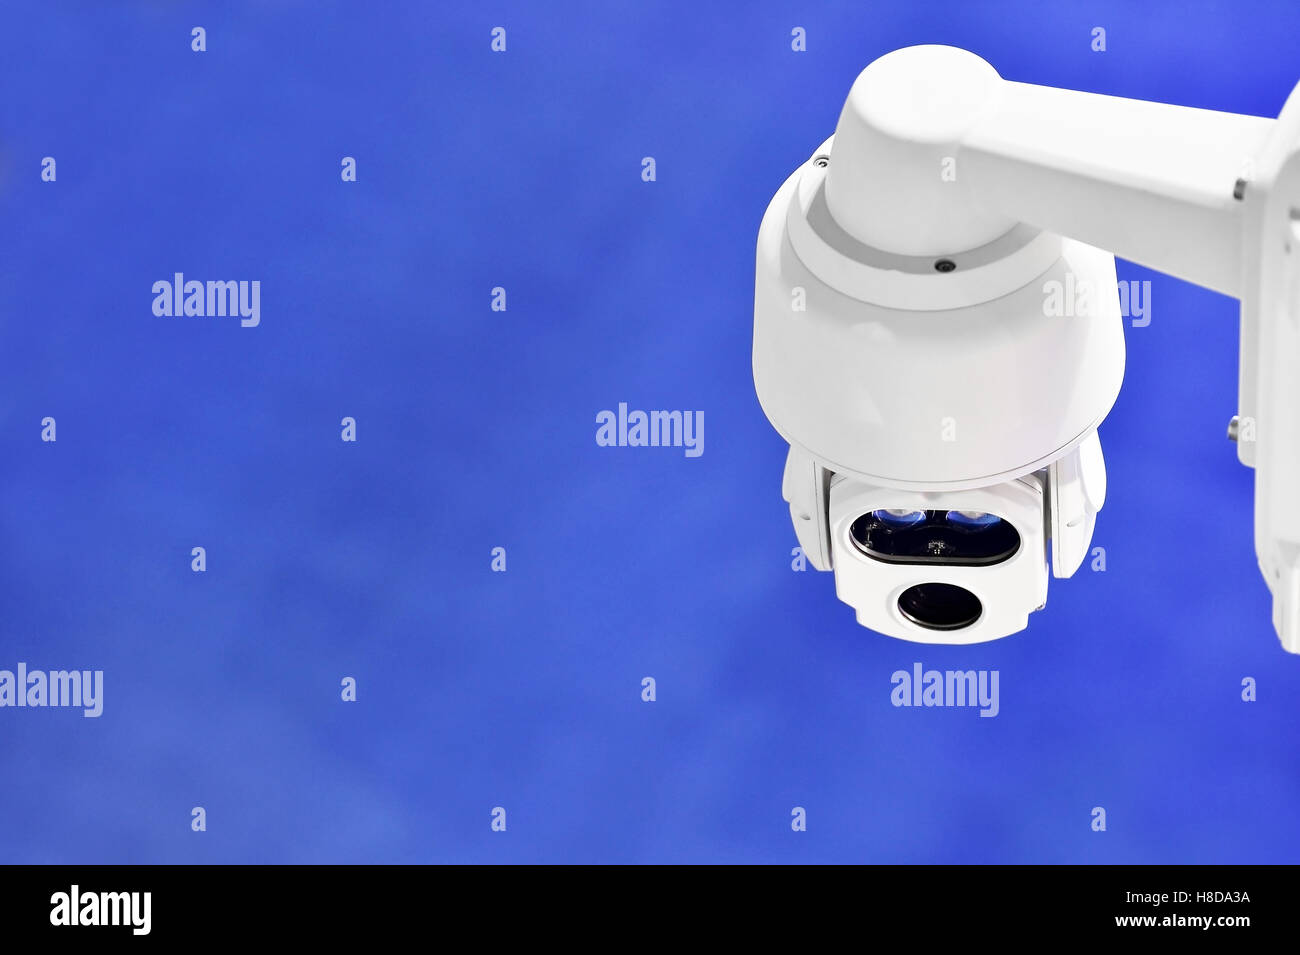 Surveillance camera inside a company with blue background - Stock Image